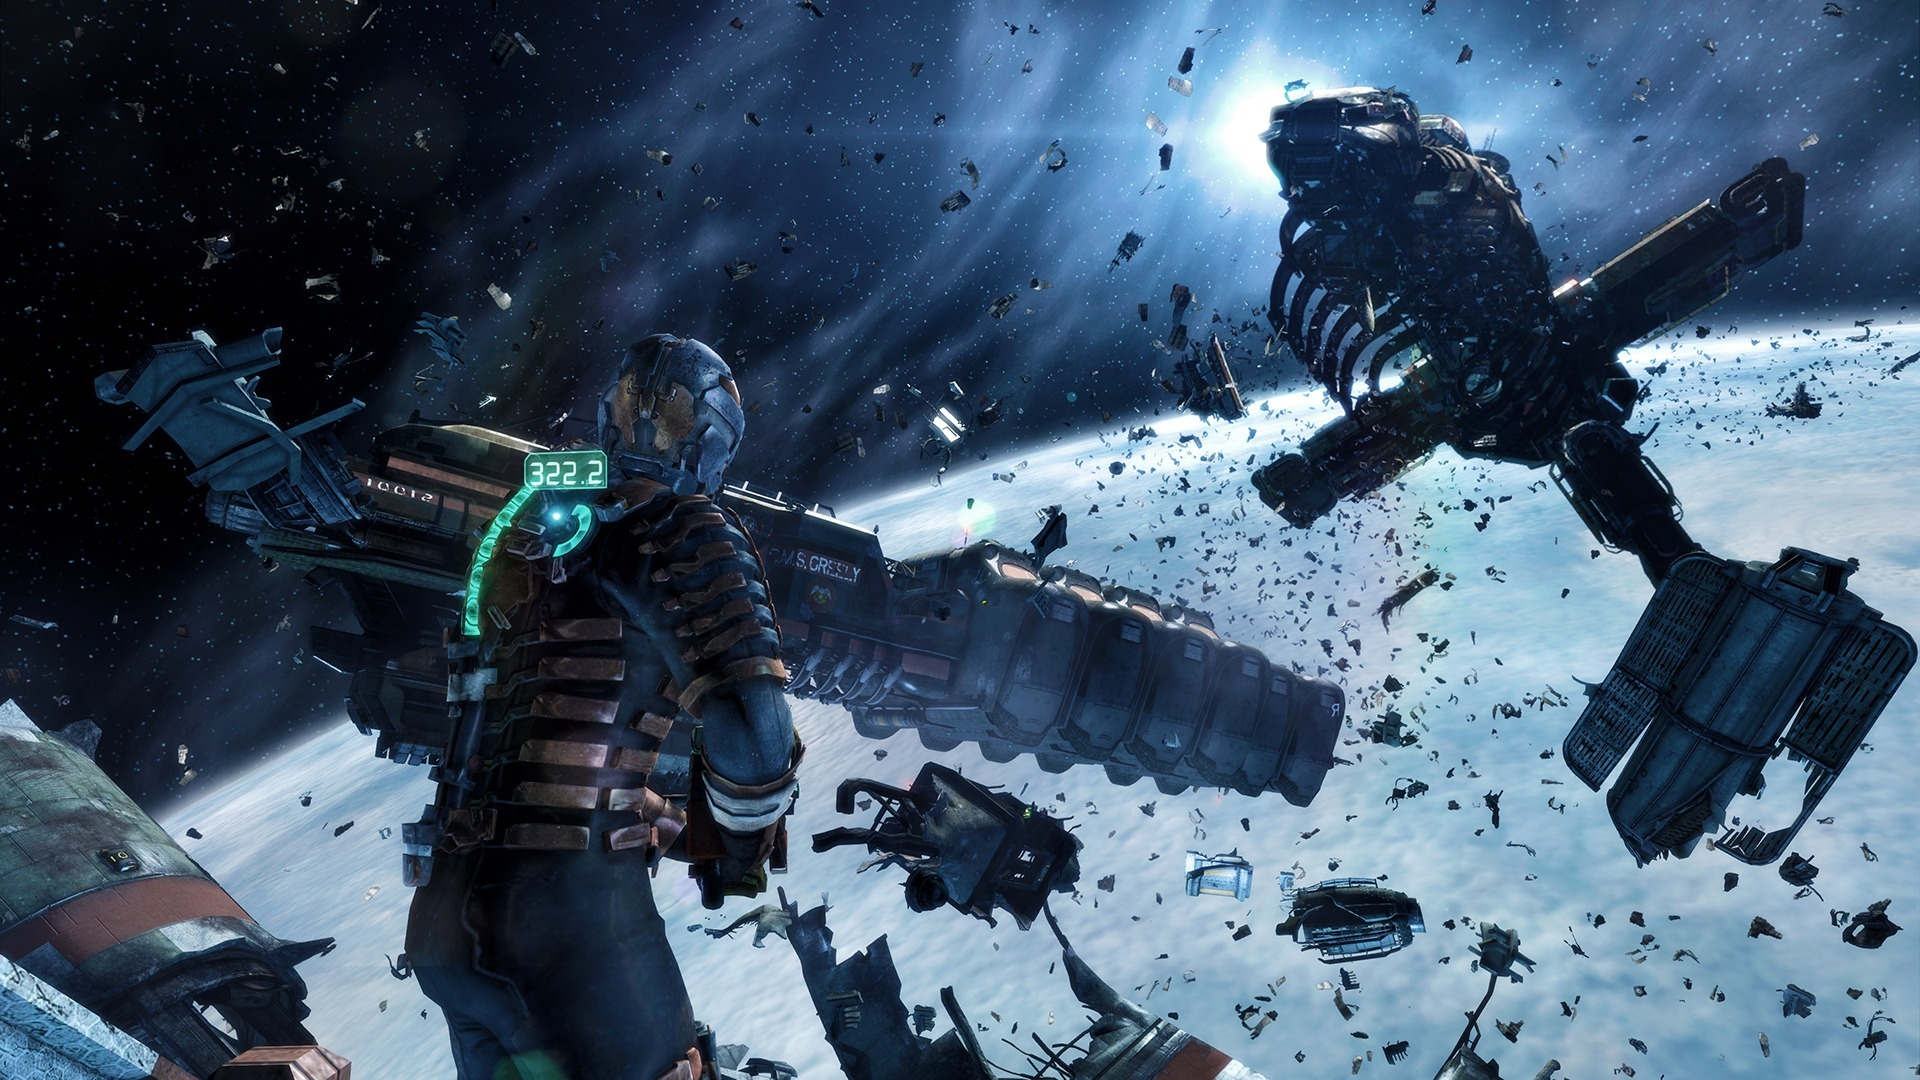 Dead Space 3 Warriors Disasters Armor sci-fi wallpaper | 1920x1080 ...